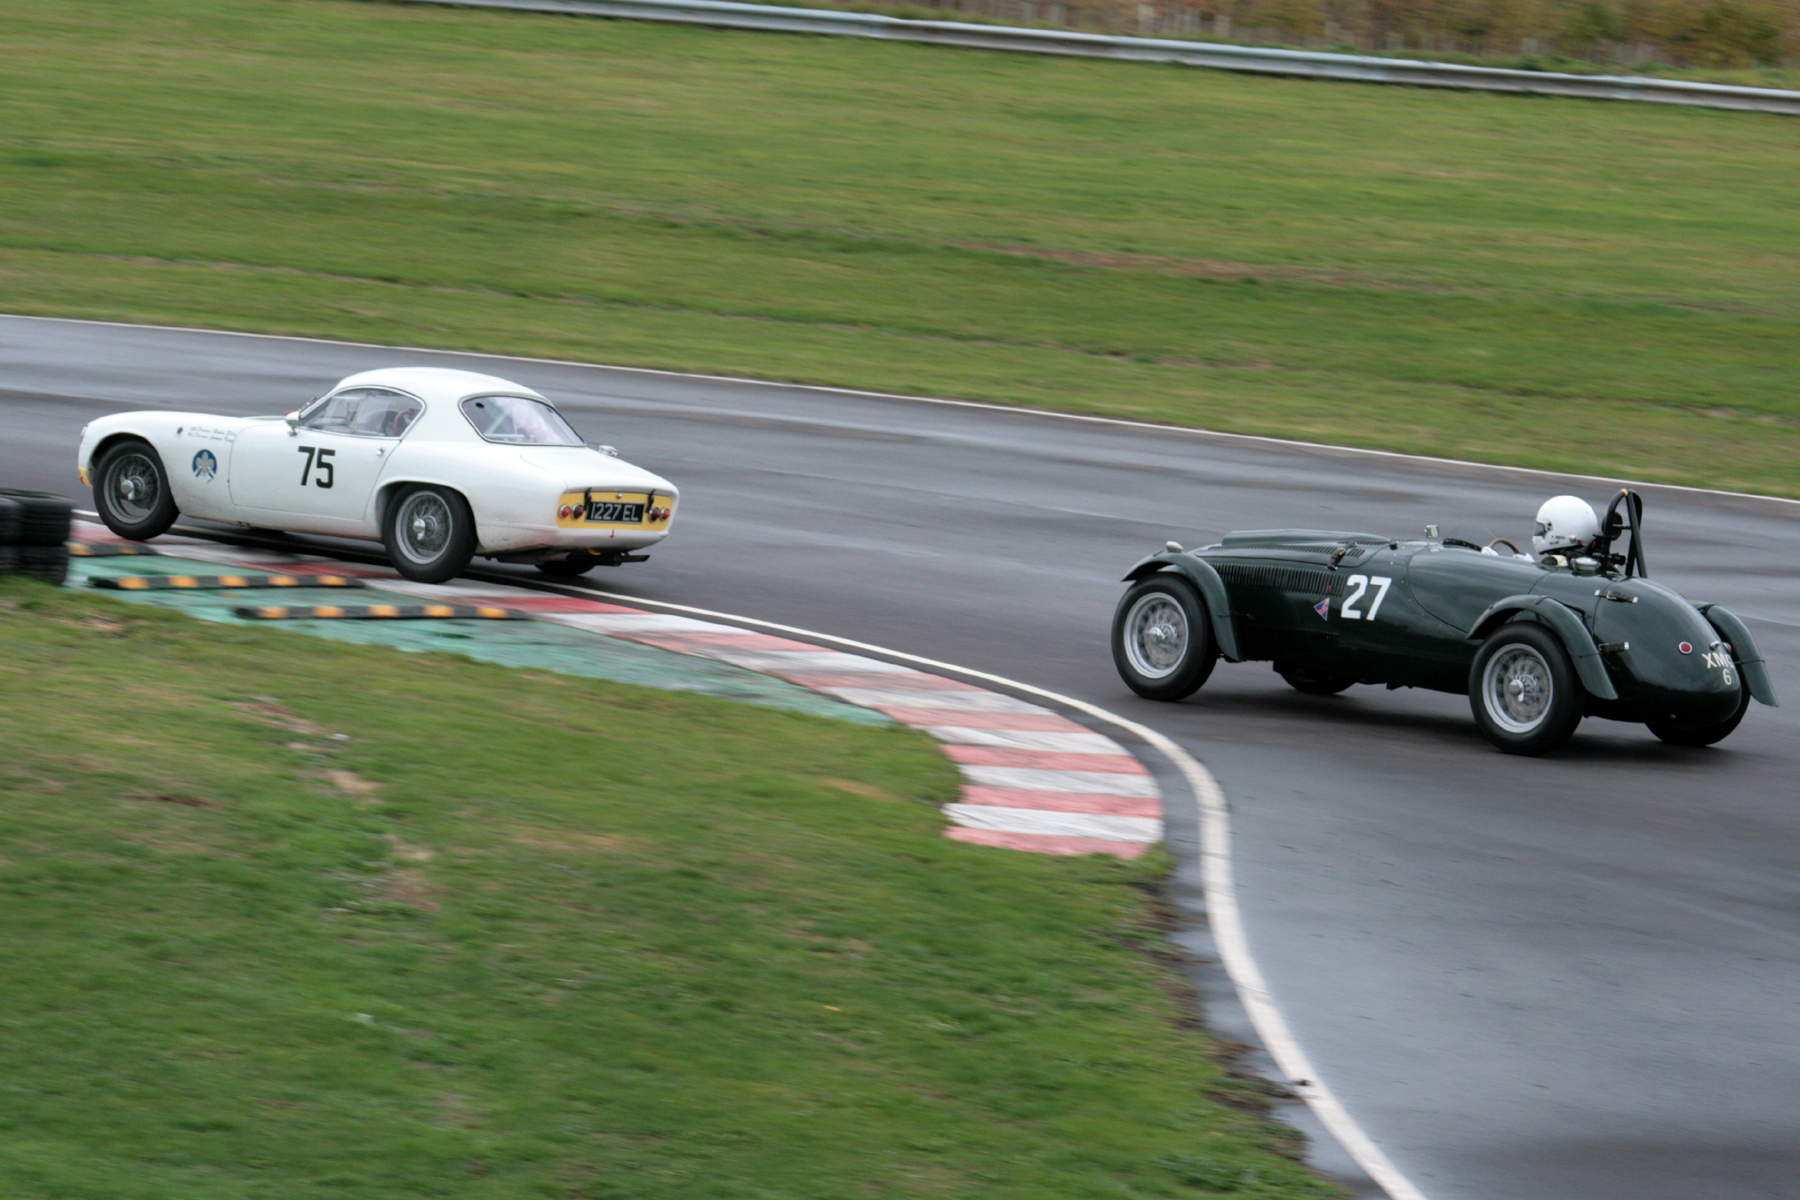 Robin Ellis has just taken the lead from Martyn Corfield going into the Esses  Photos - John Turner